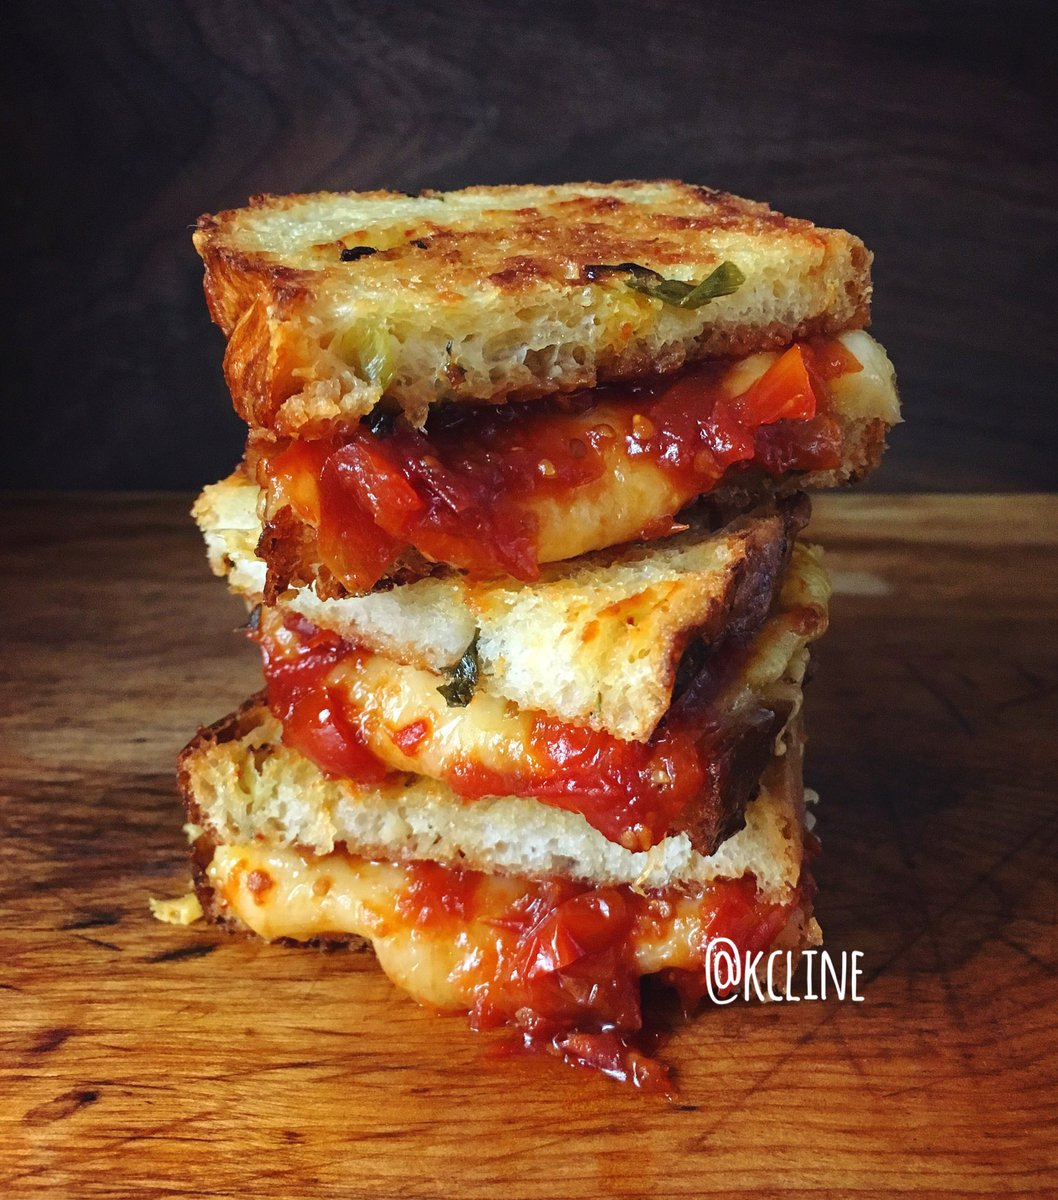 Happy #NationalGrilledCheeseDay! Here's my Cheddar, Swiss & Tomato Jam on homemade Cheesy Scallion Bread https://t.co/n8iP8ma4zQ